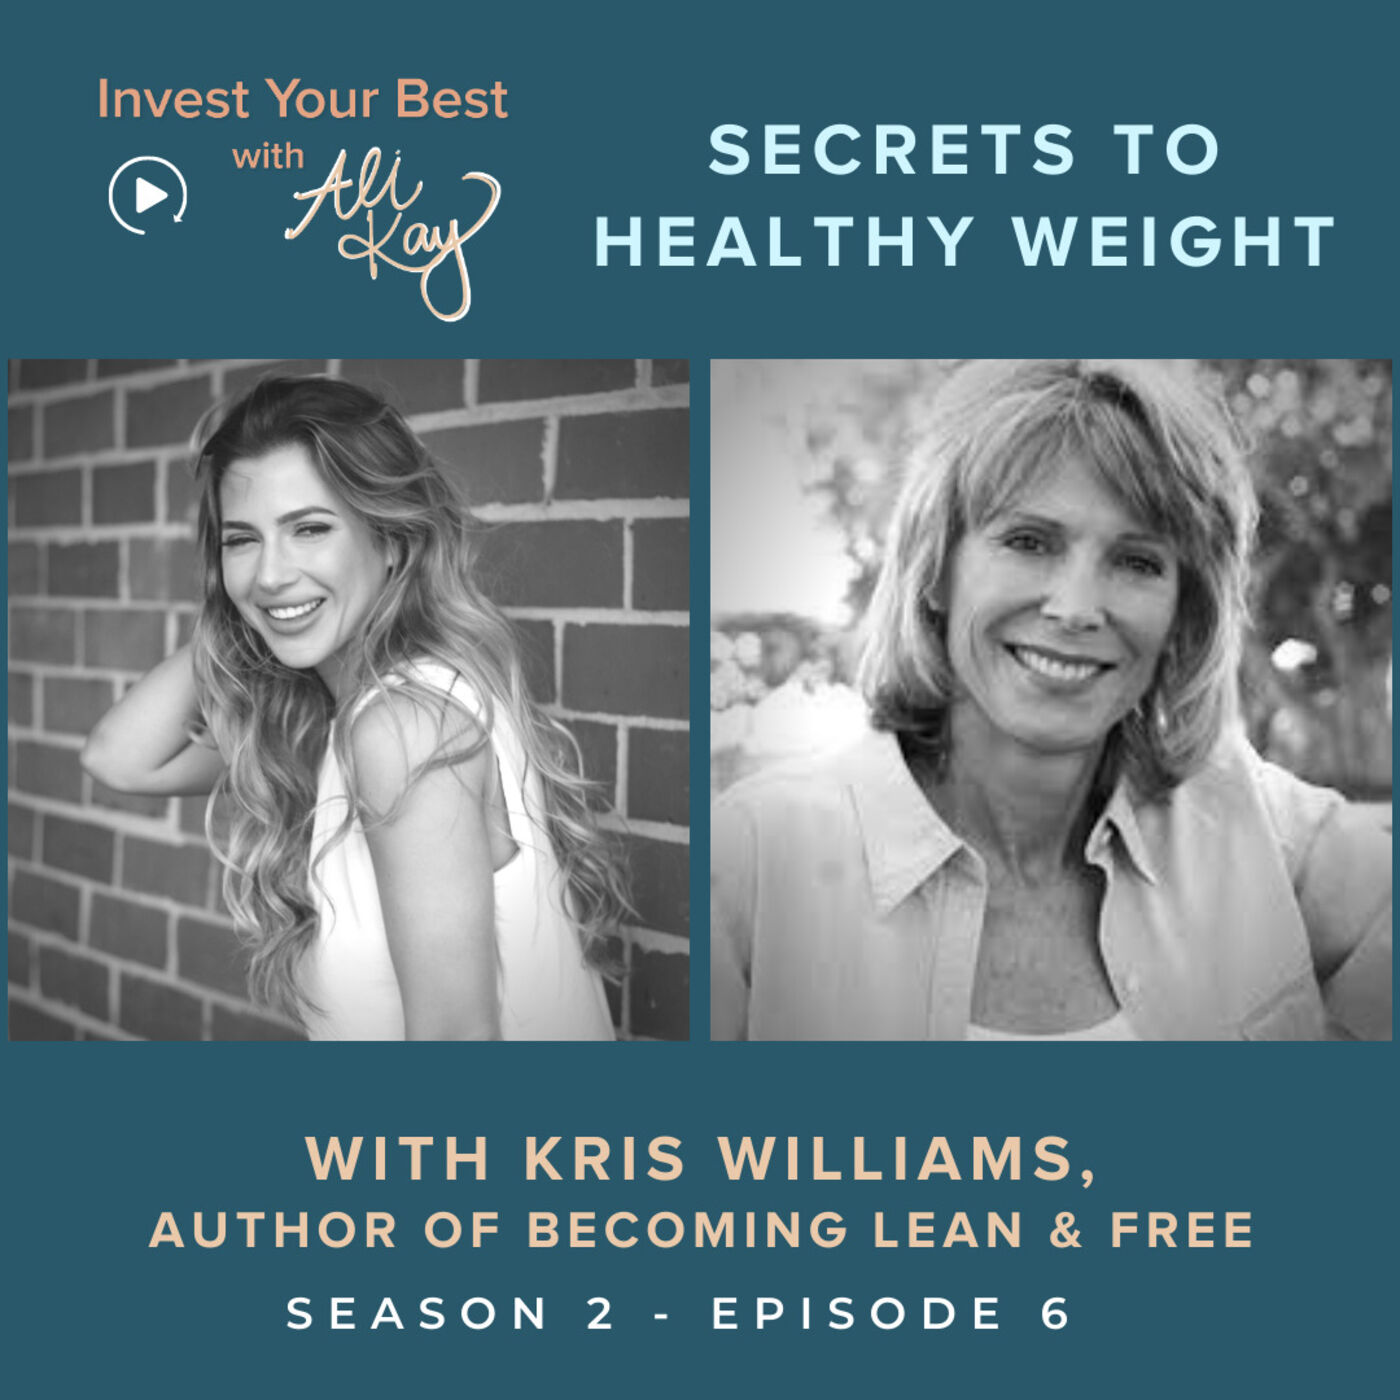 Secrets to Healthy Weight with Kris Williams